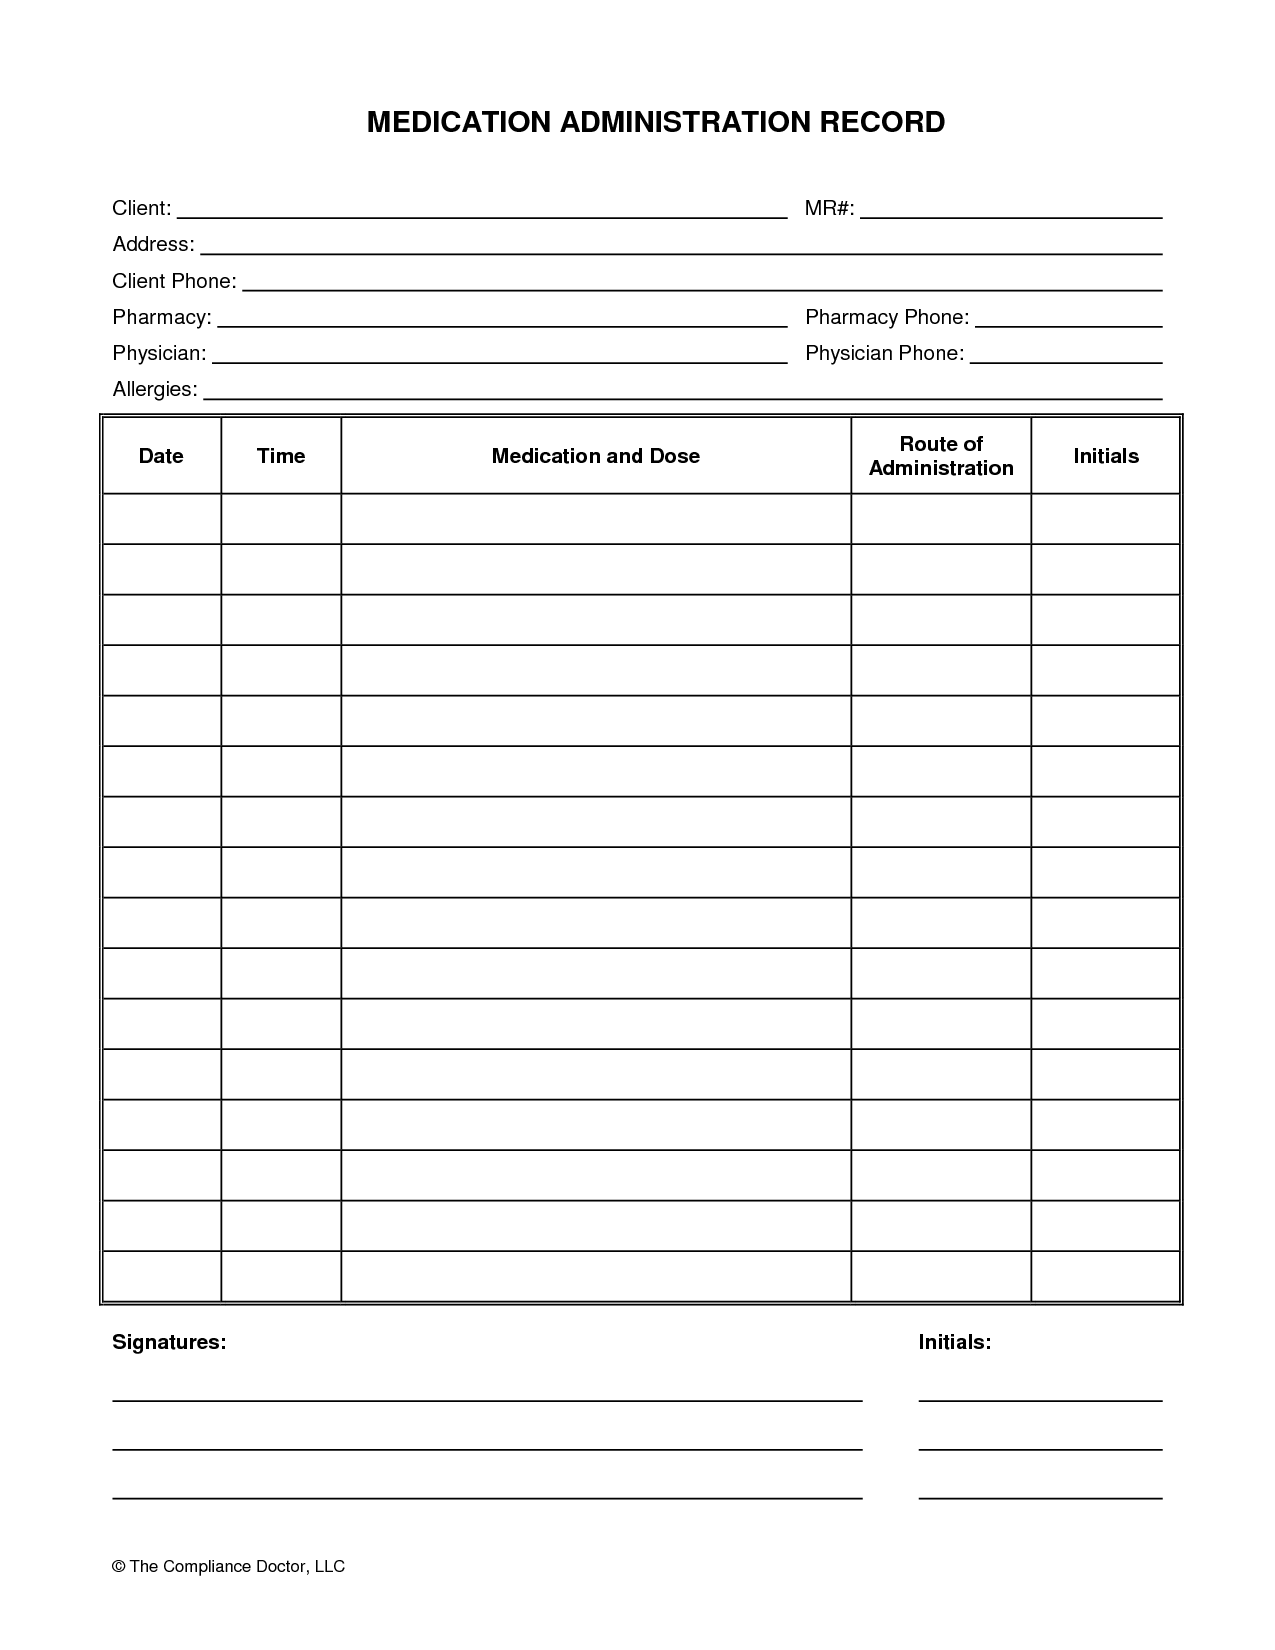 medication administration record form organization pinterest